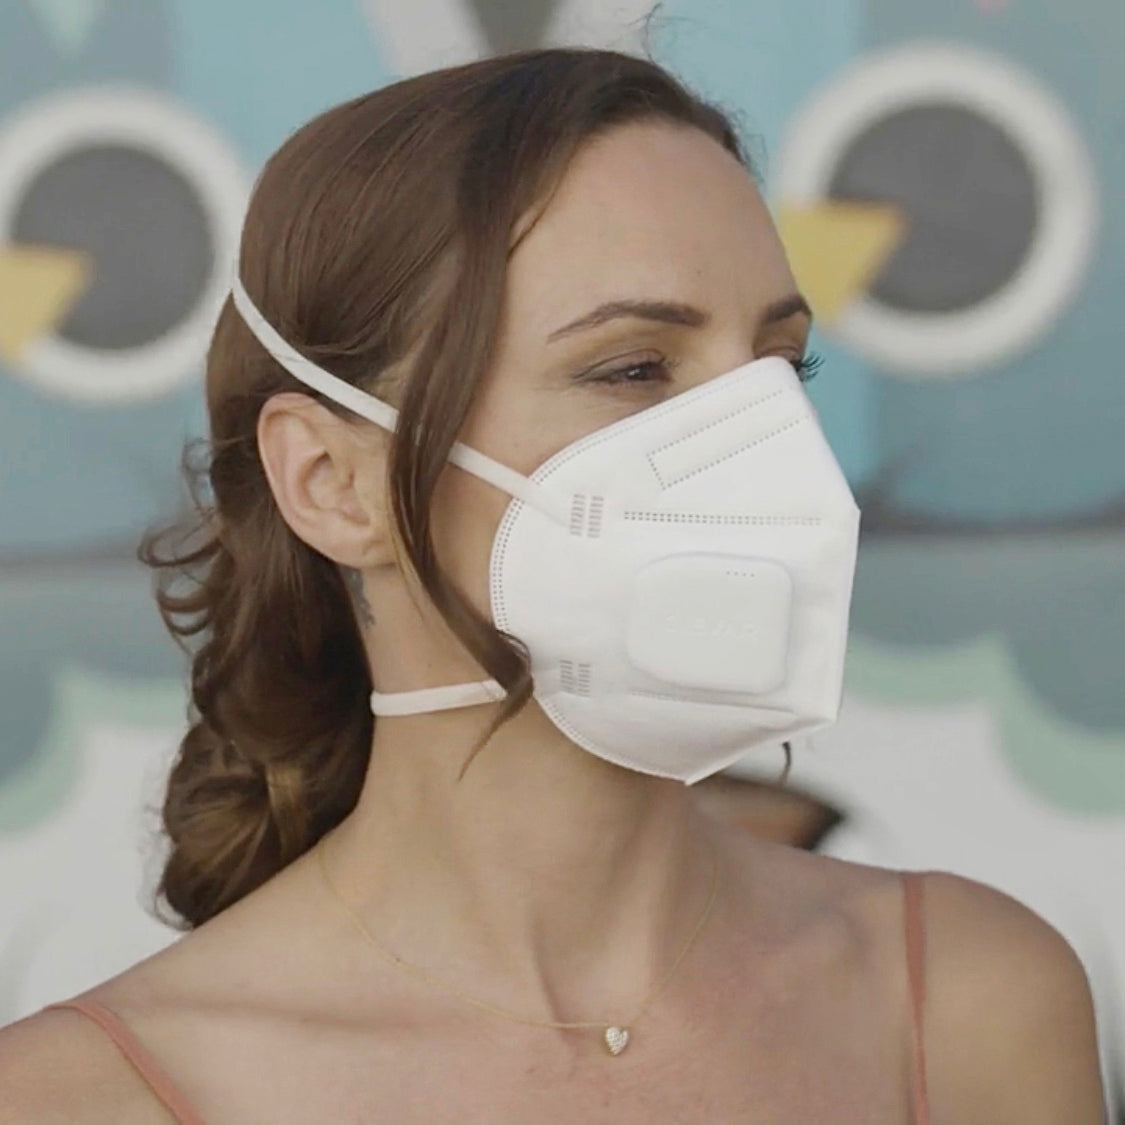 Our world is changing daily, and we need protection from invisible dangers in the very air that we breathe. An effective comfortable mask that we can trust is essential to our daily lives.   But let's face it, wearing a mask is uncomfortable.